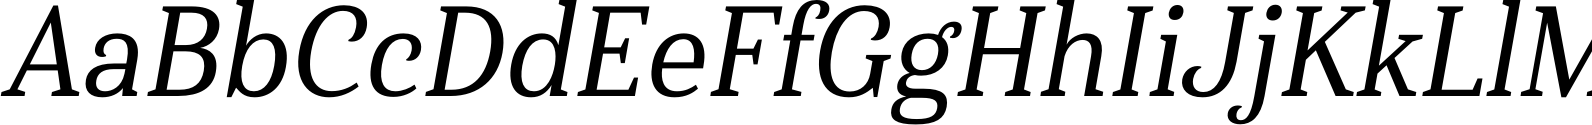 Haboro Serif Cond Medium It Font